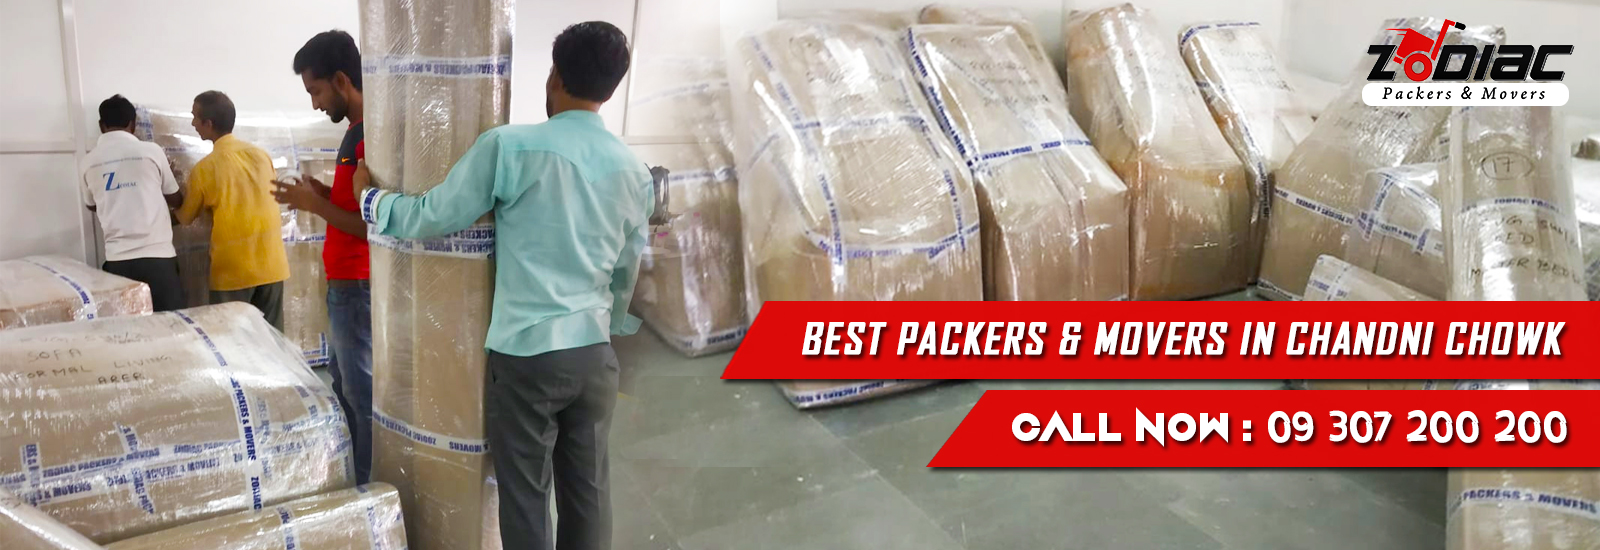 Packers and Movers in Chandni Chowk